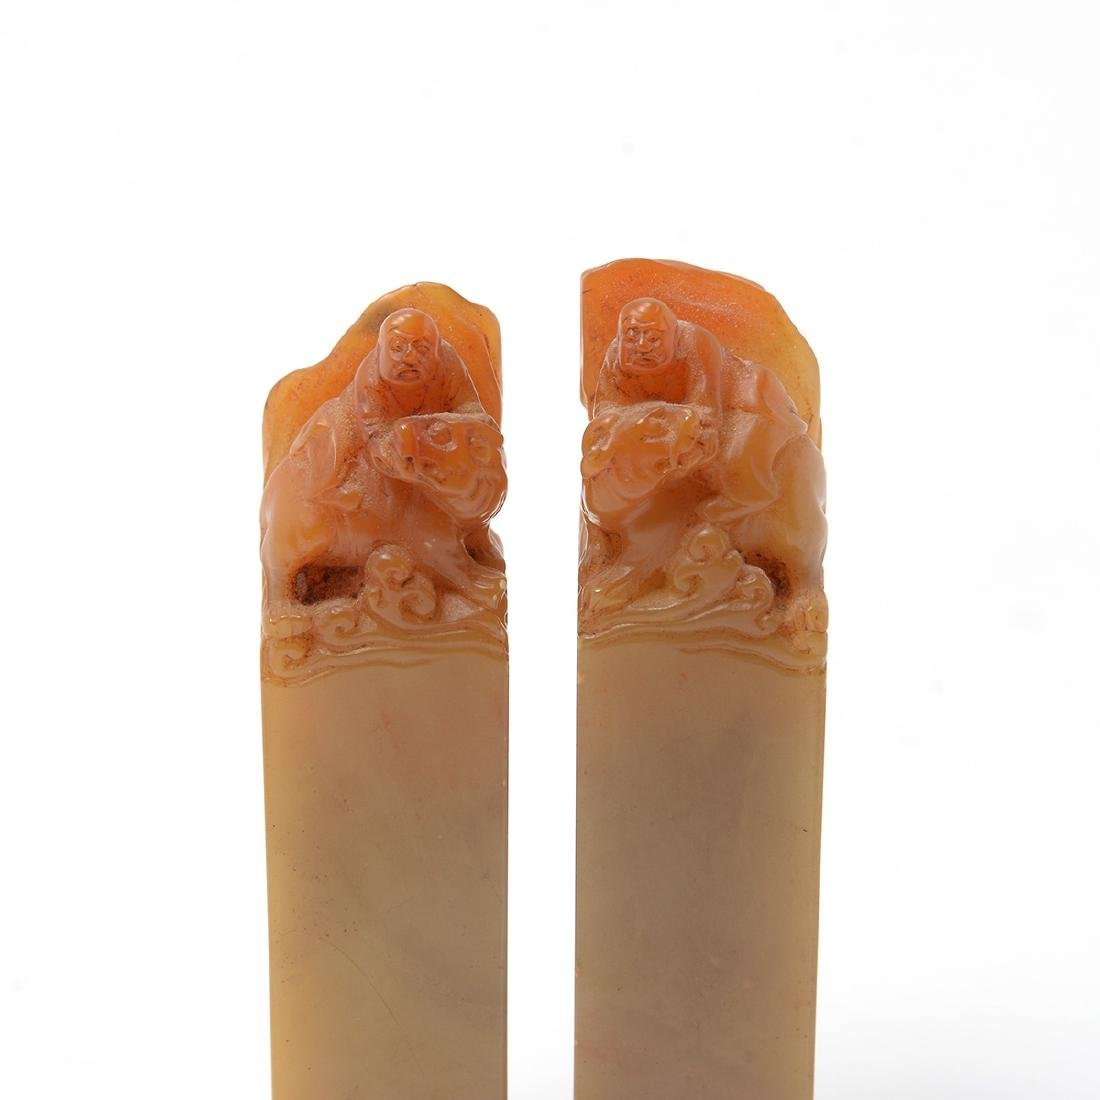 Pair of Soapstone Seals, Qing Dynasty - 2